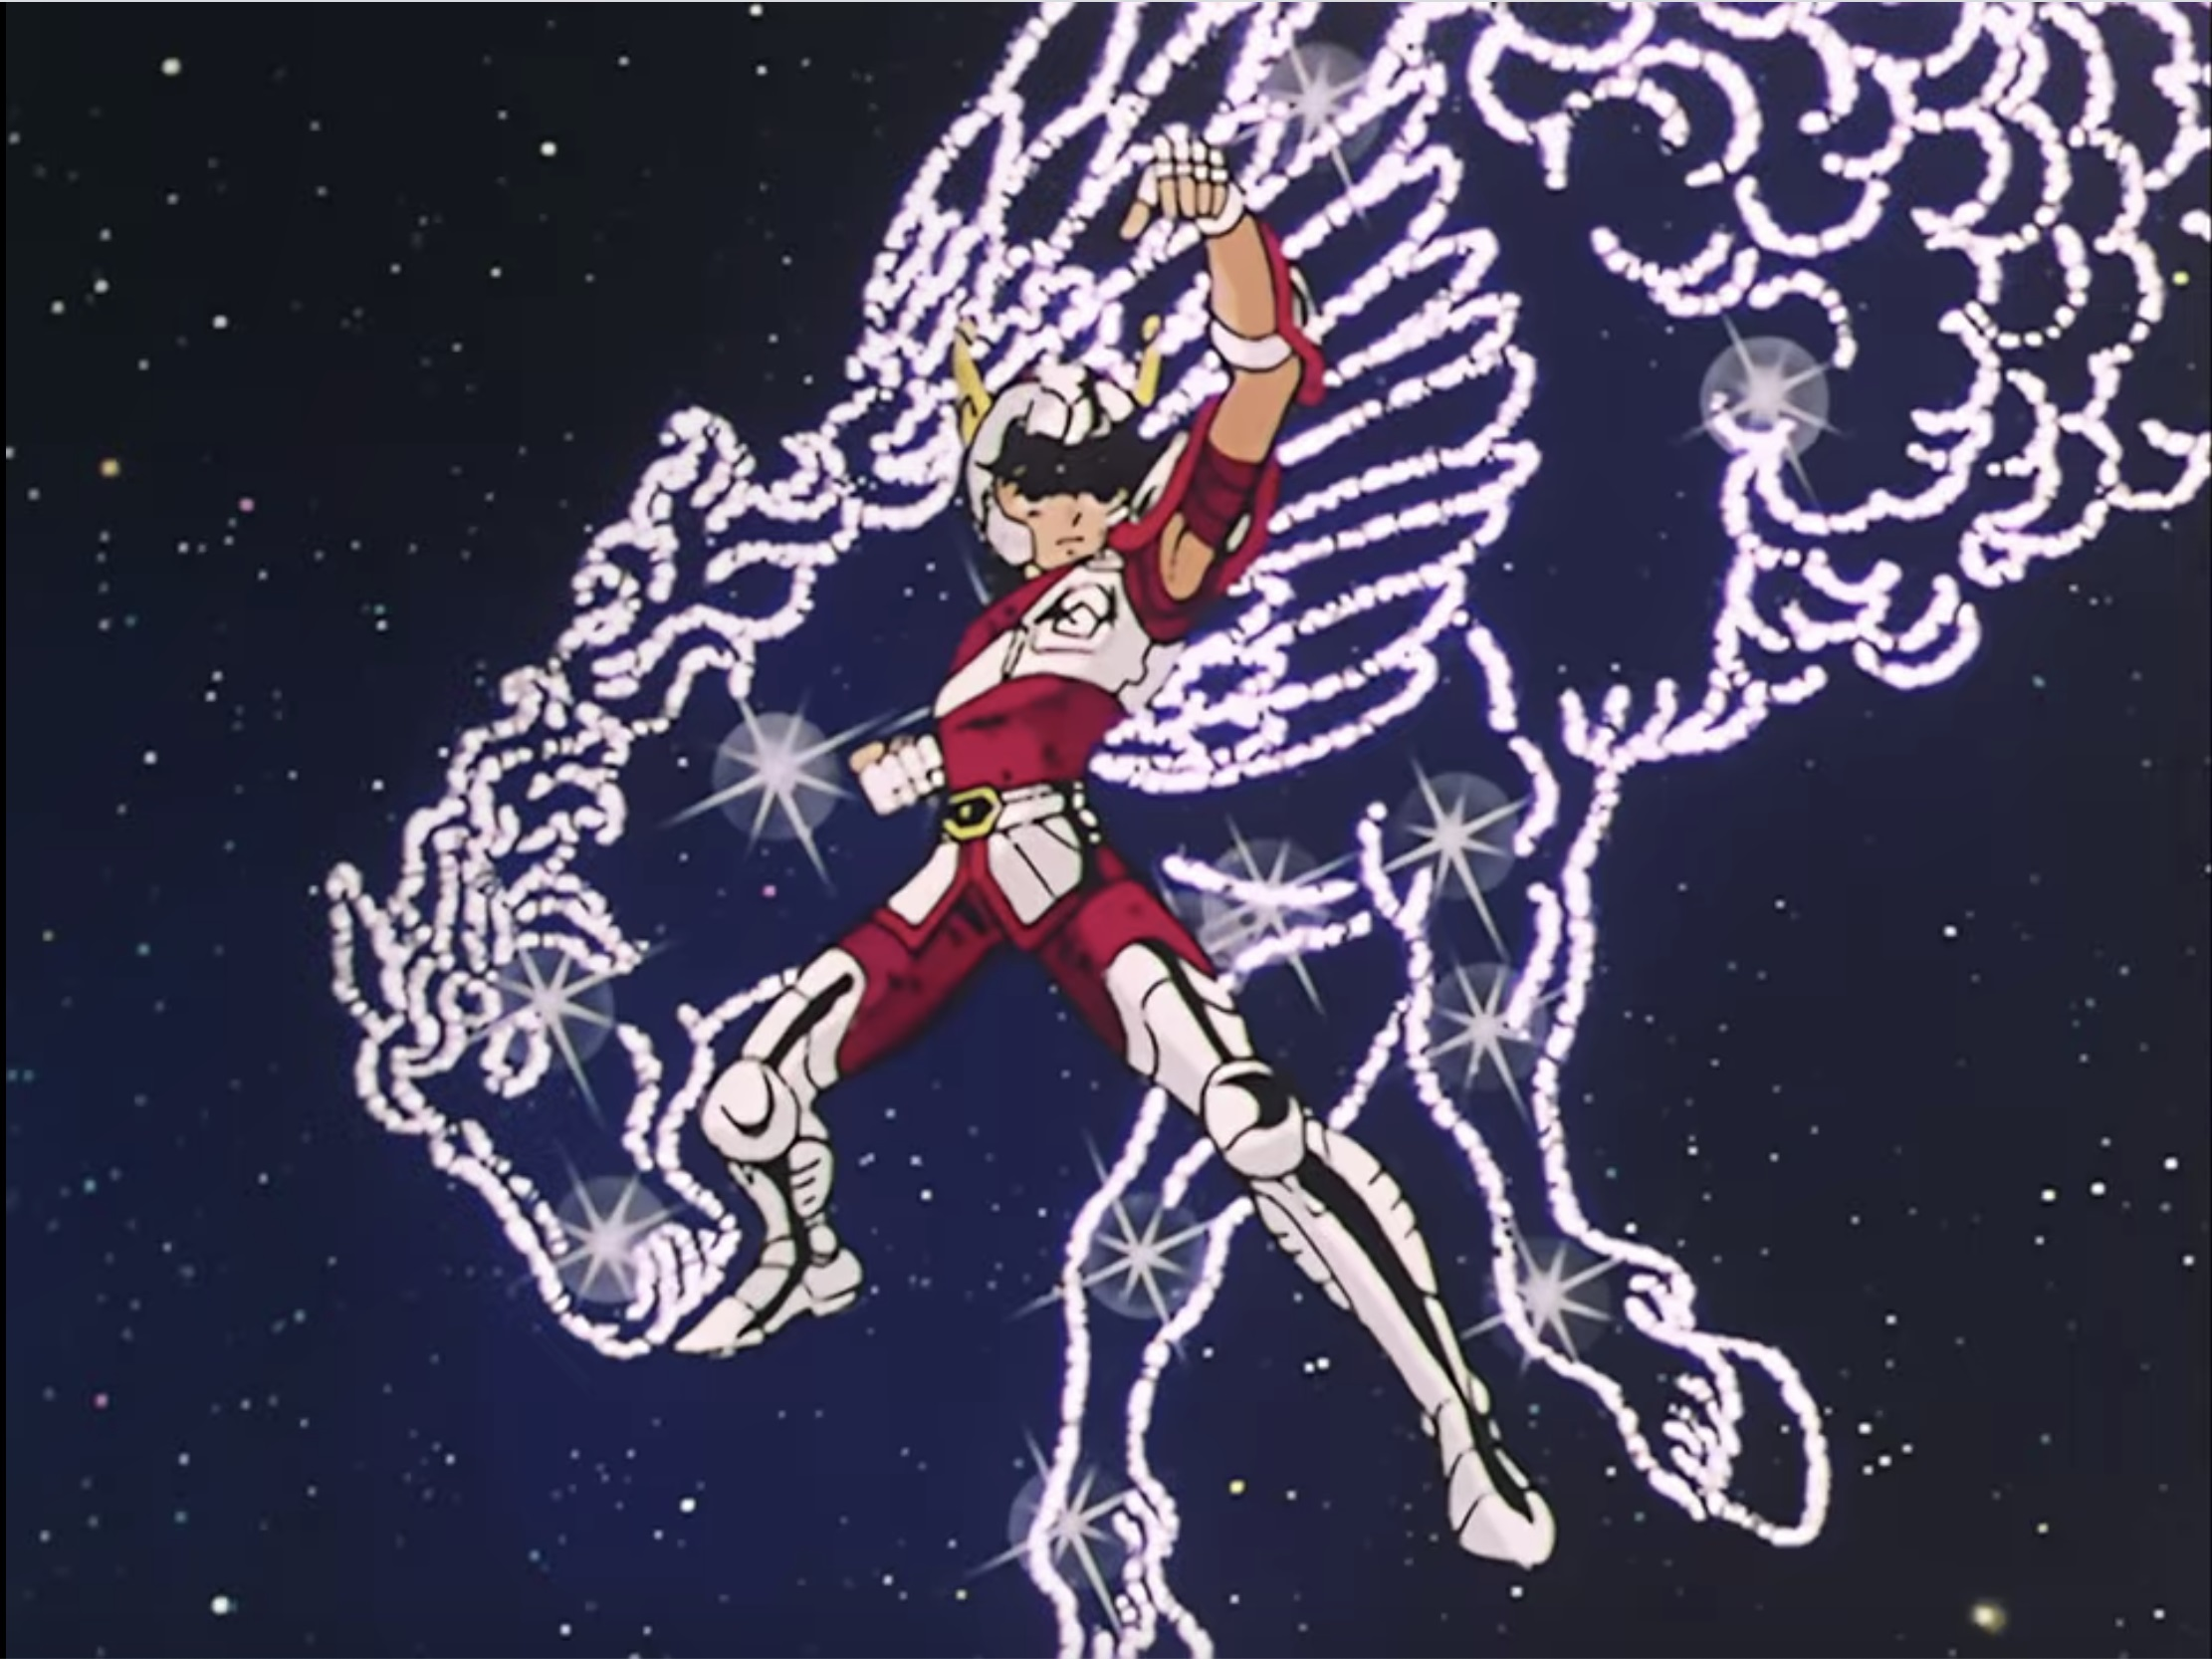 Seiya poses in front of a constellation of Pegasus in a scene from the 1986 - 1989 Saint Seiya TV anime.